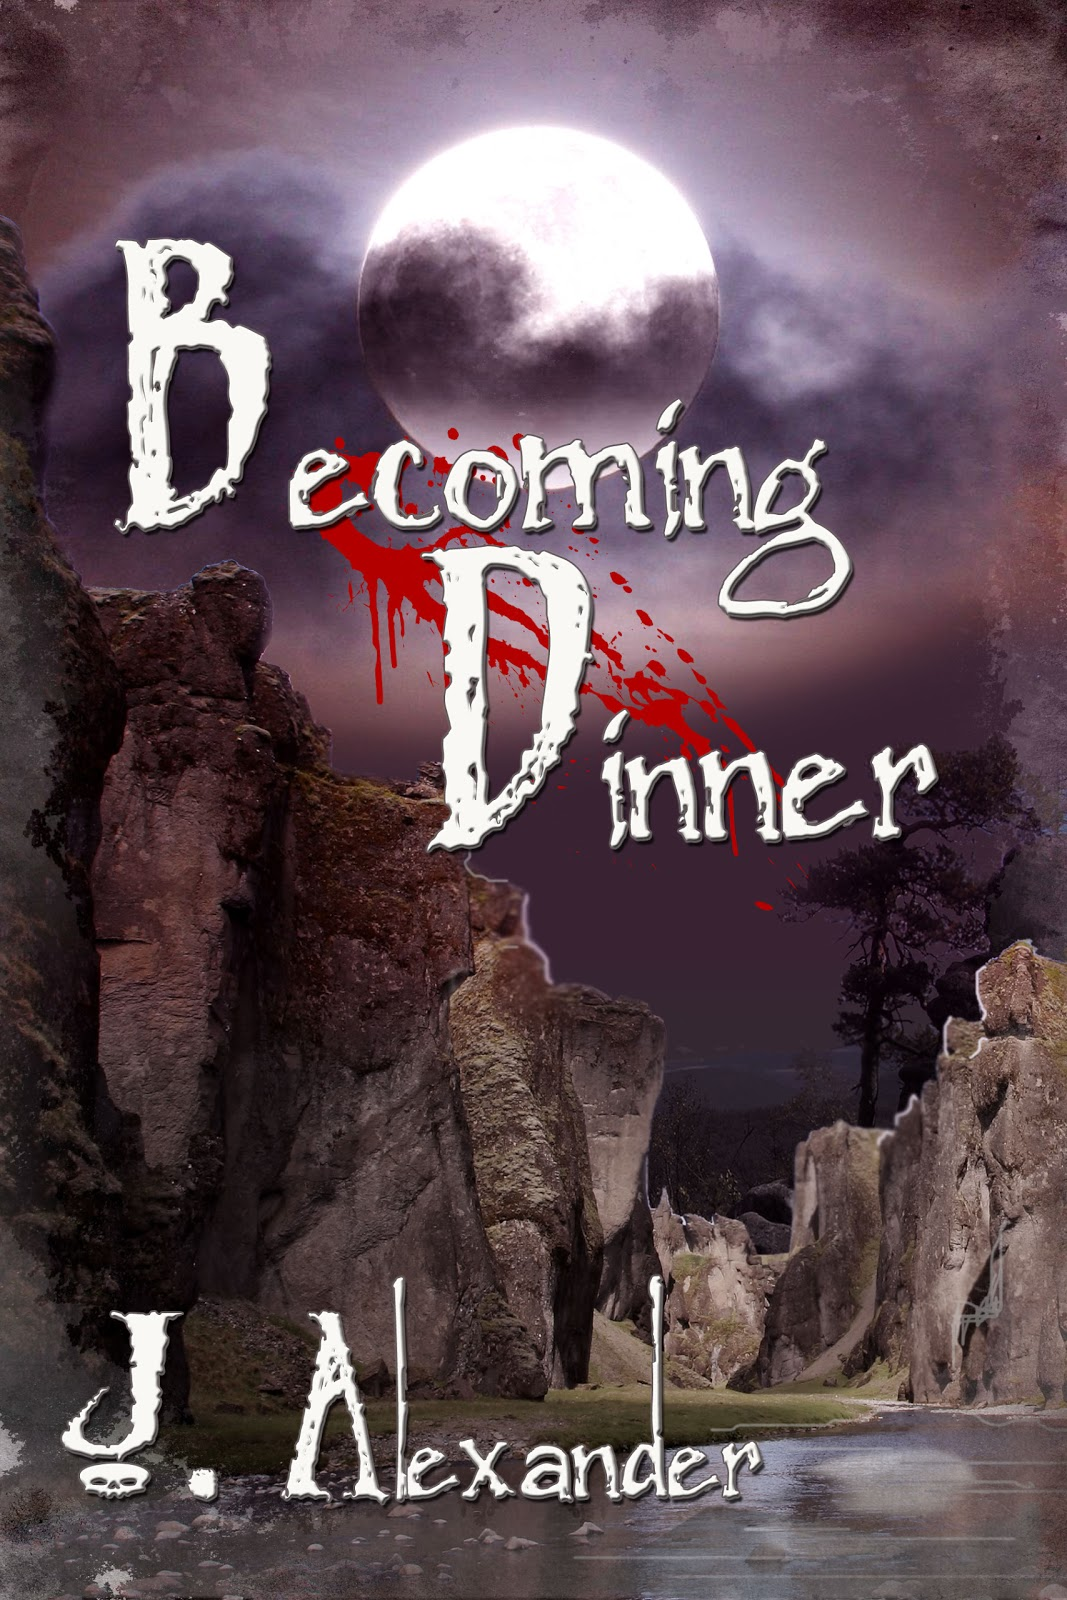 becoming+dinner It's probably the most melody focused work of his mature years.